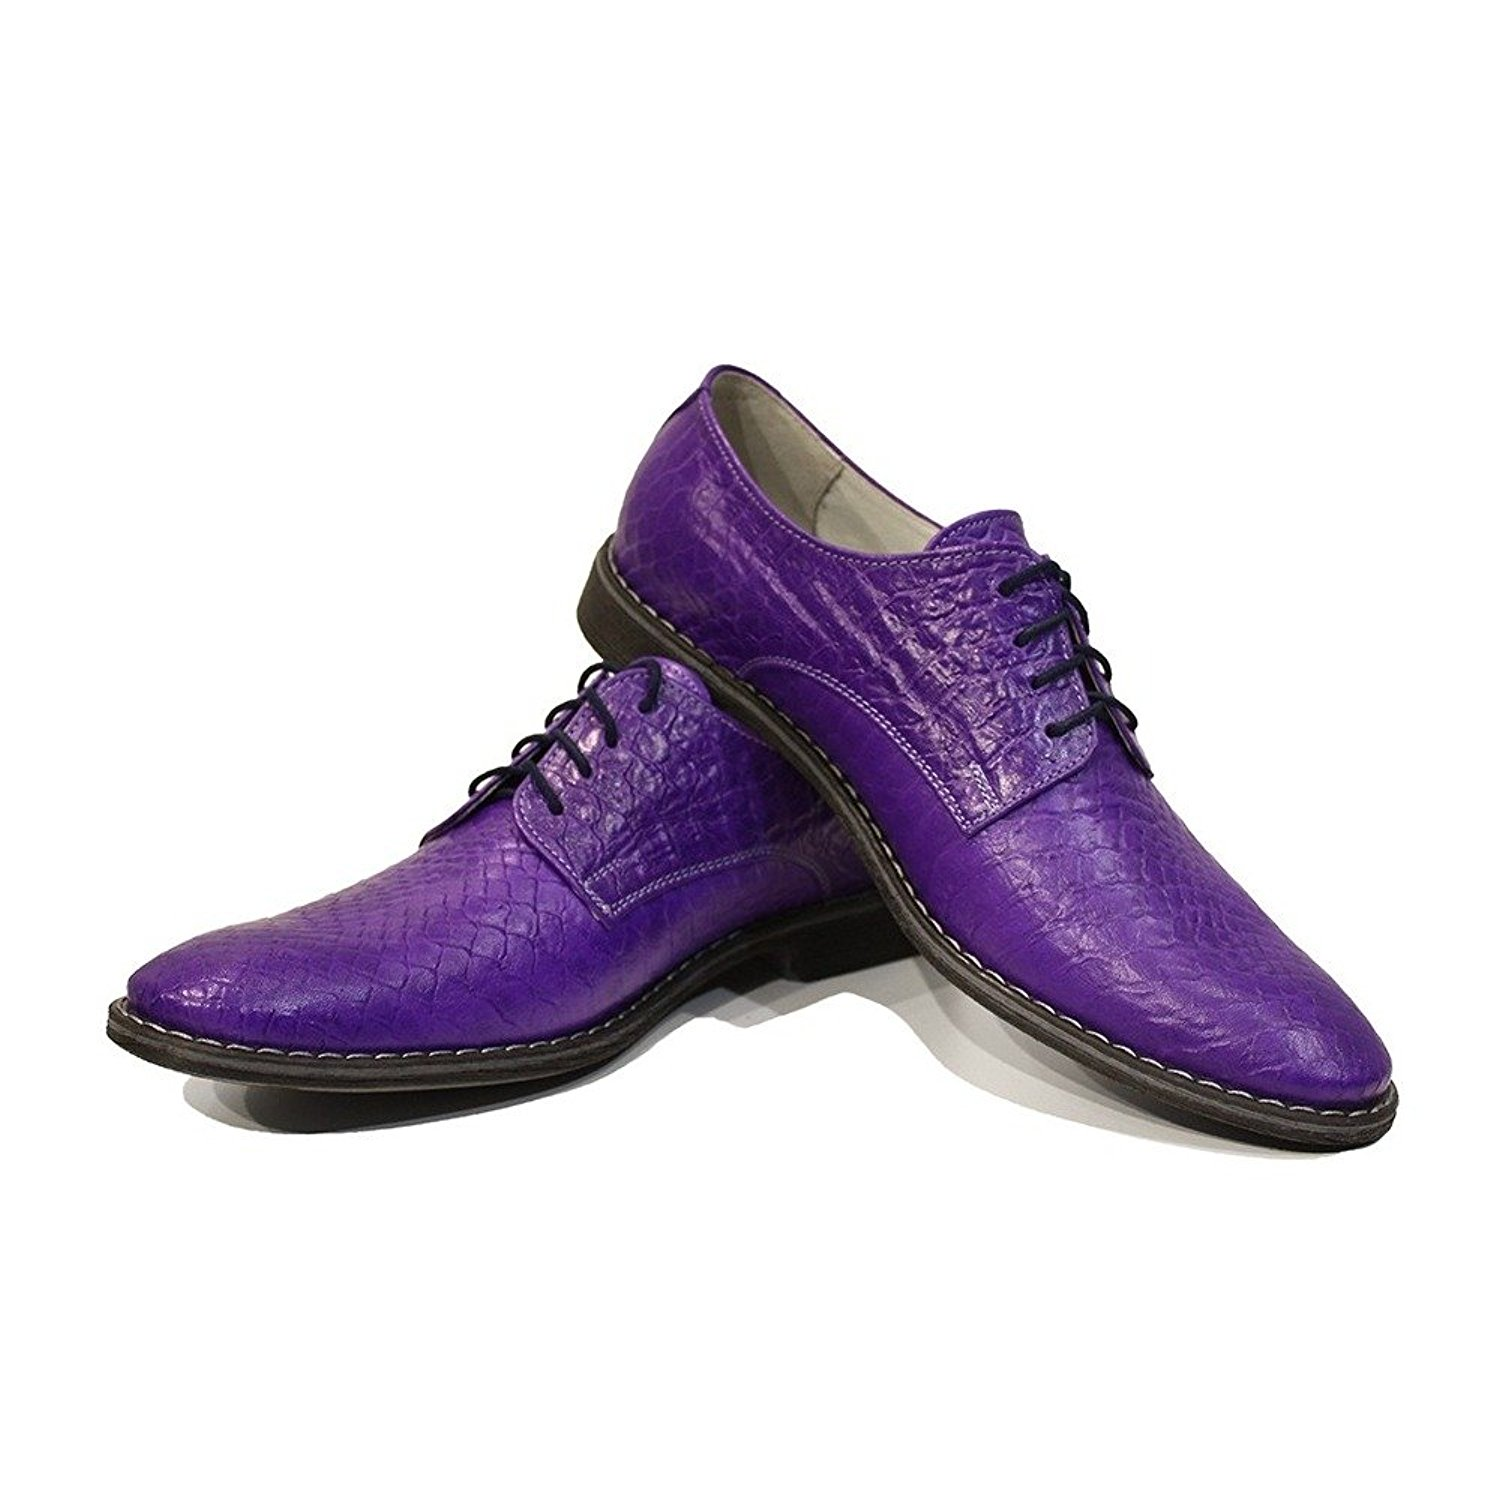 Modello Vitale - Handmade Italian Mens Purple Oxfords Dress Shoes - Cowhide Embossed Leather - Lace-up